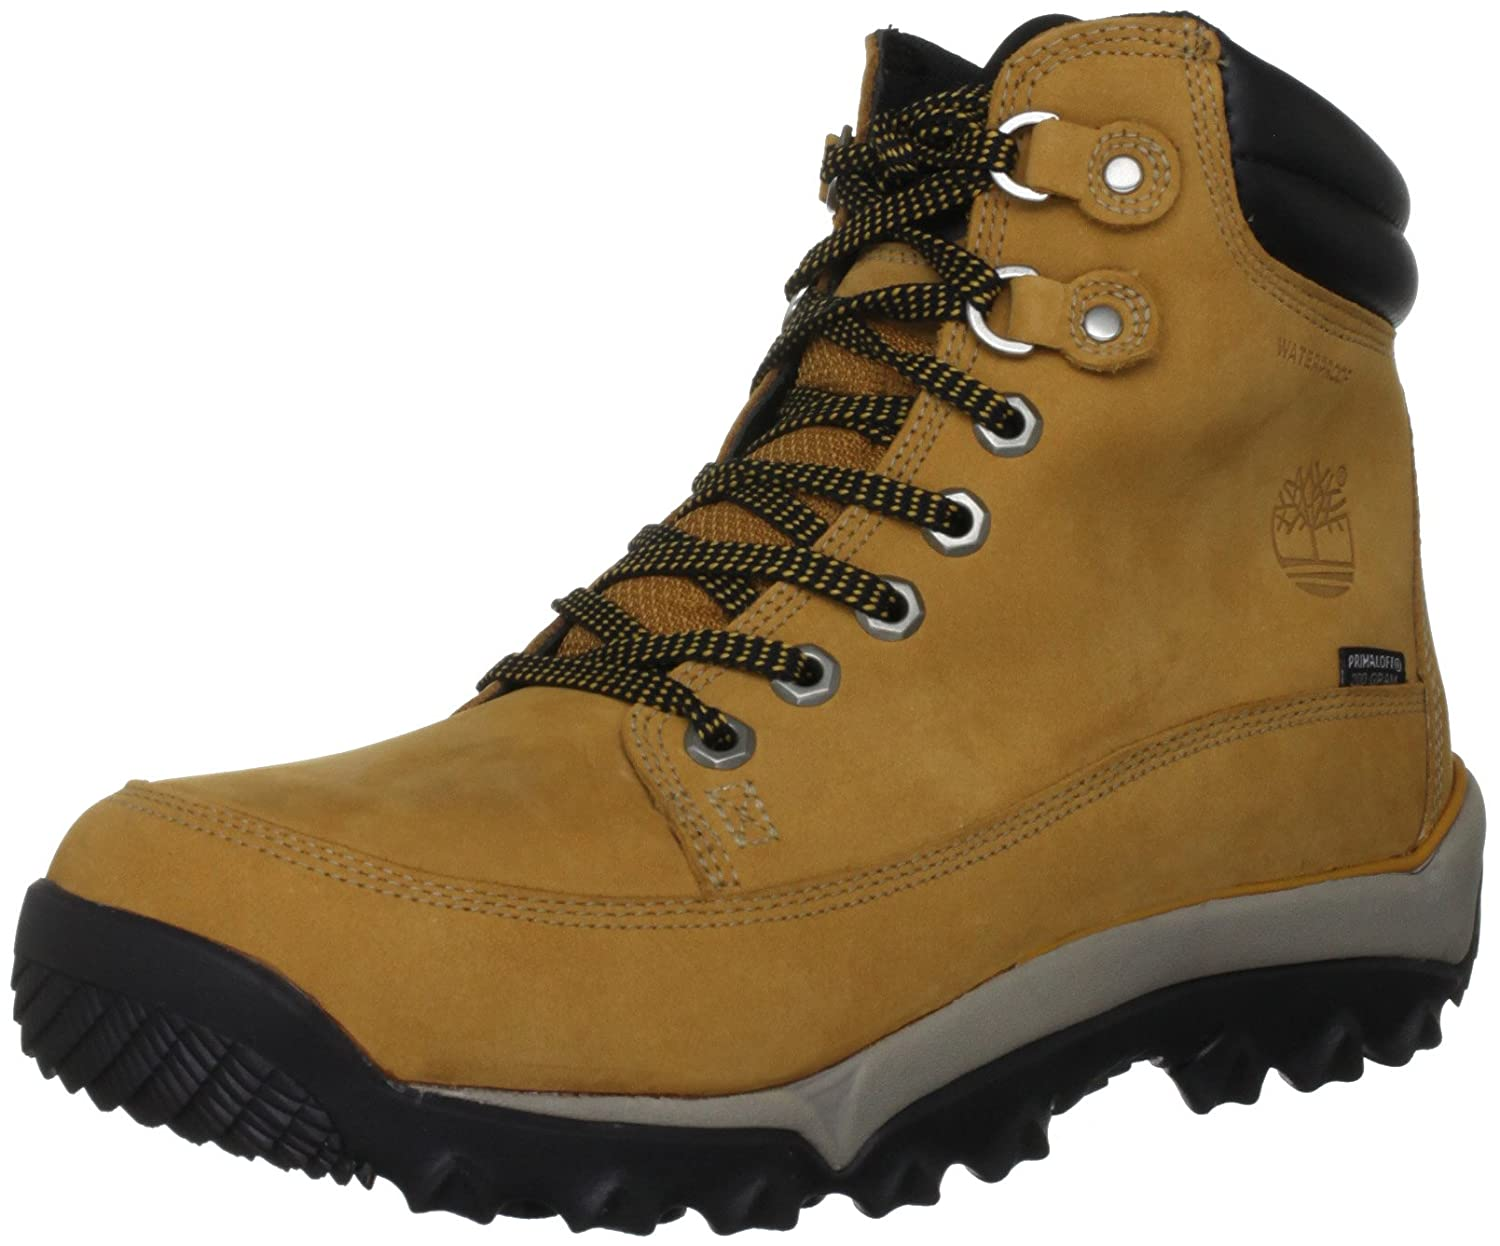 4afecea6ace Timberland Rime Ridge Mid Wp Insulated, Men's High Rise Hiking Shoes